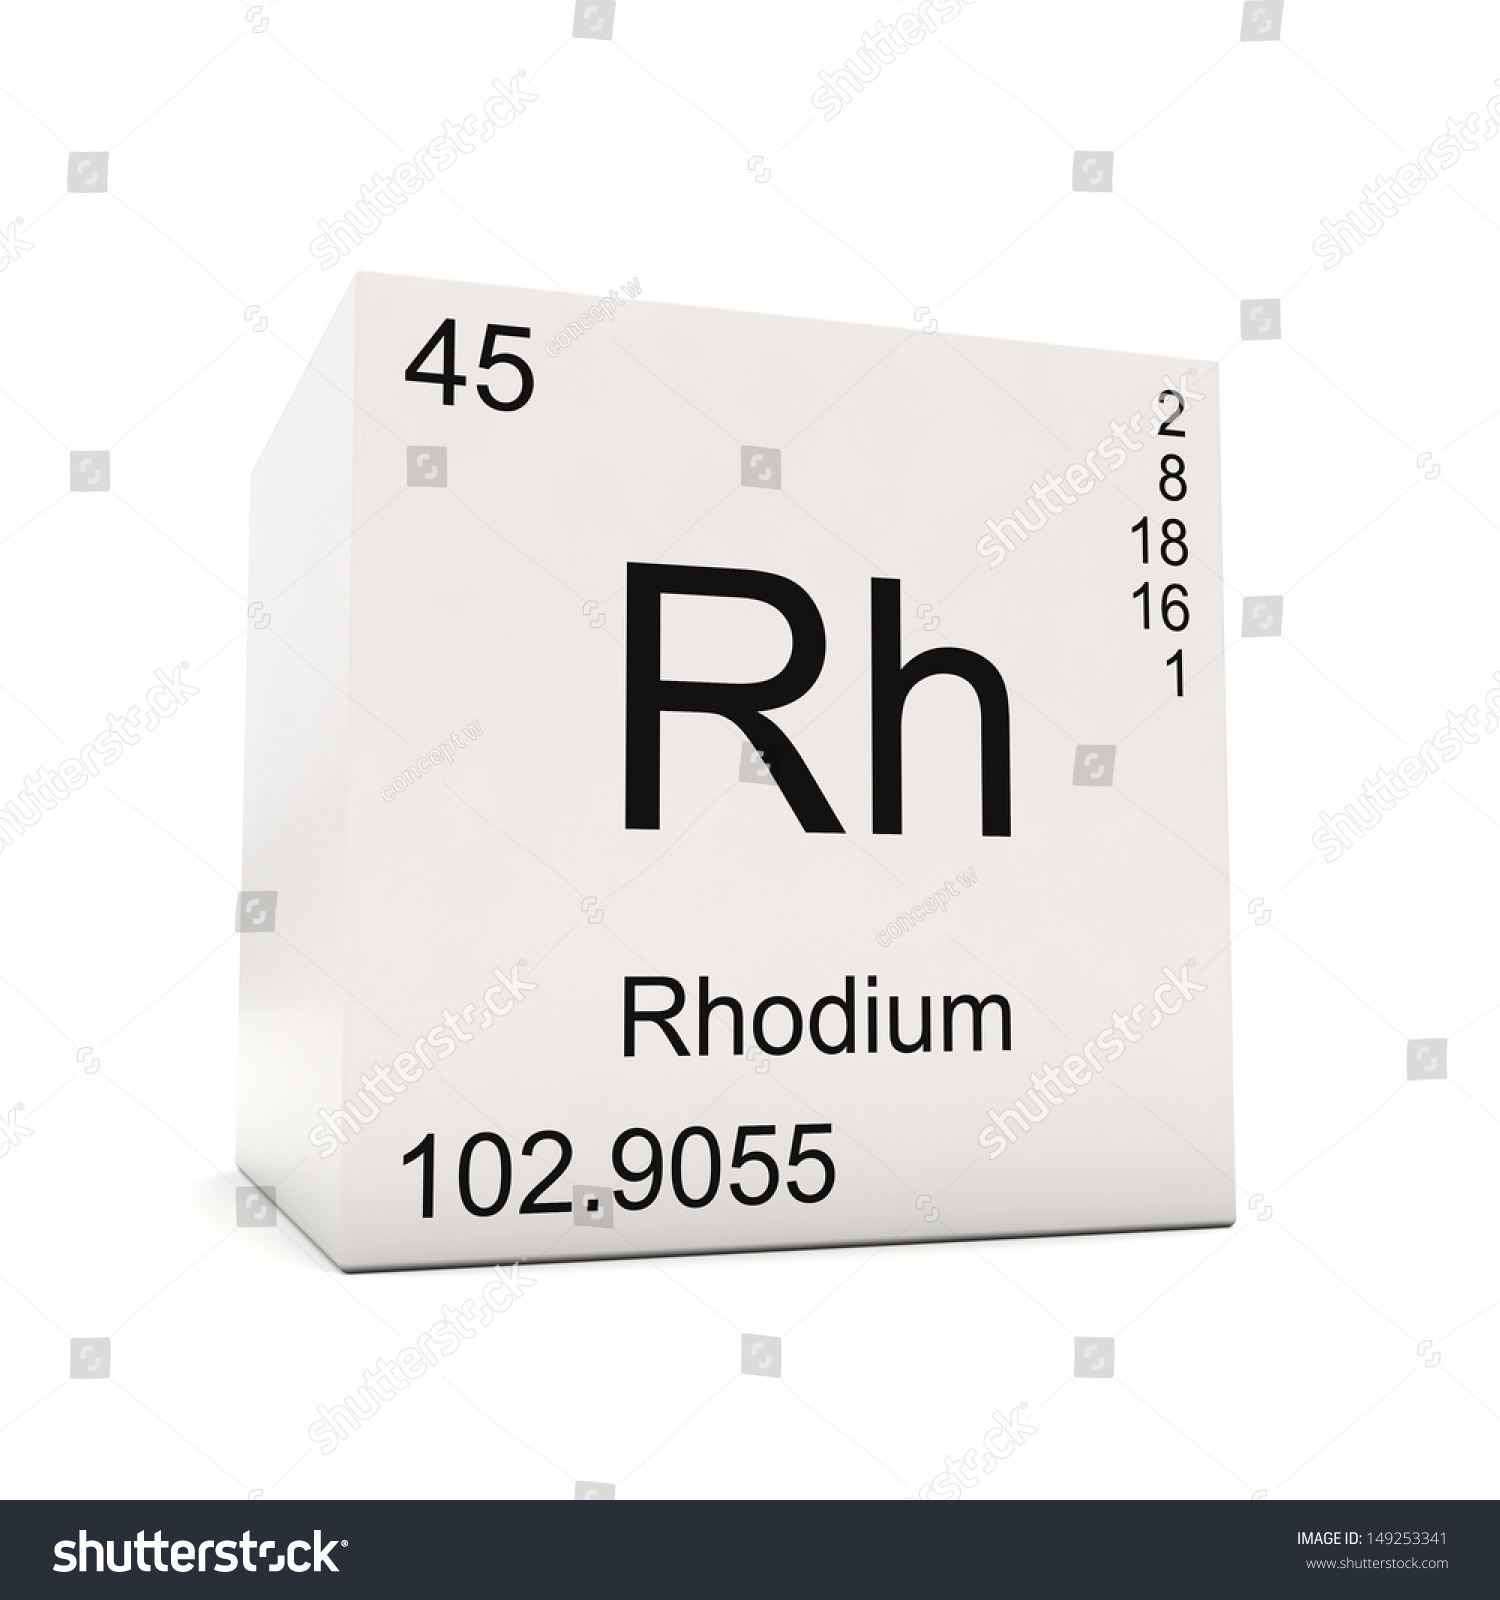 Cube rhodium element periodic table isolated stock illustration cube of rhodium element of the periodic table isolated on white background gamestrikefo Image collections